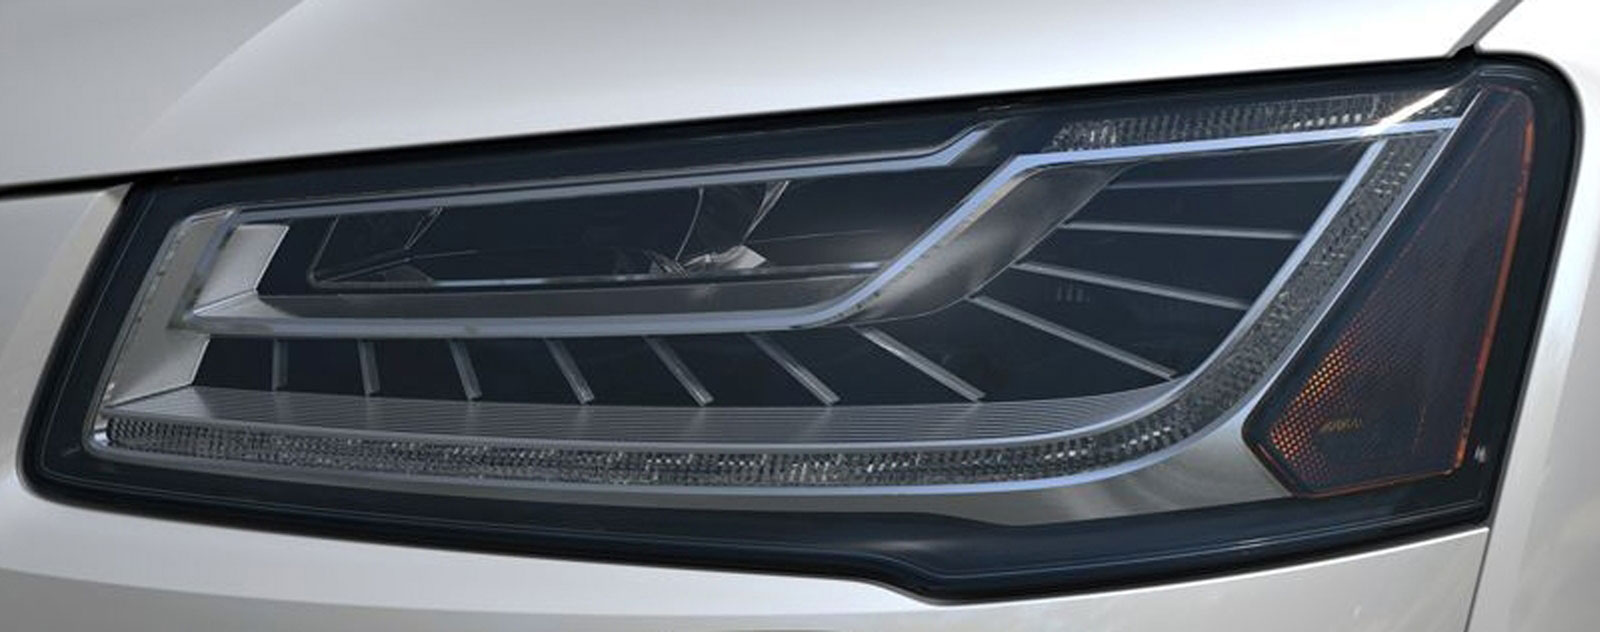 Porsche Driving School >> Audi Matrix LED Tech To Debut On A8 Facelift This Year ...